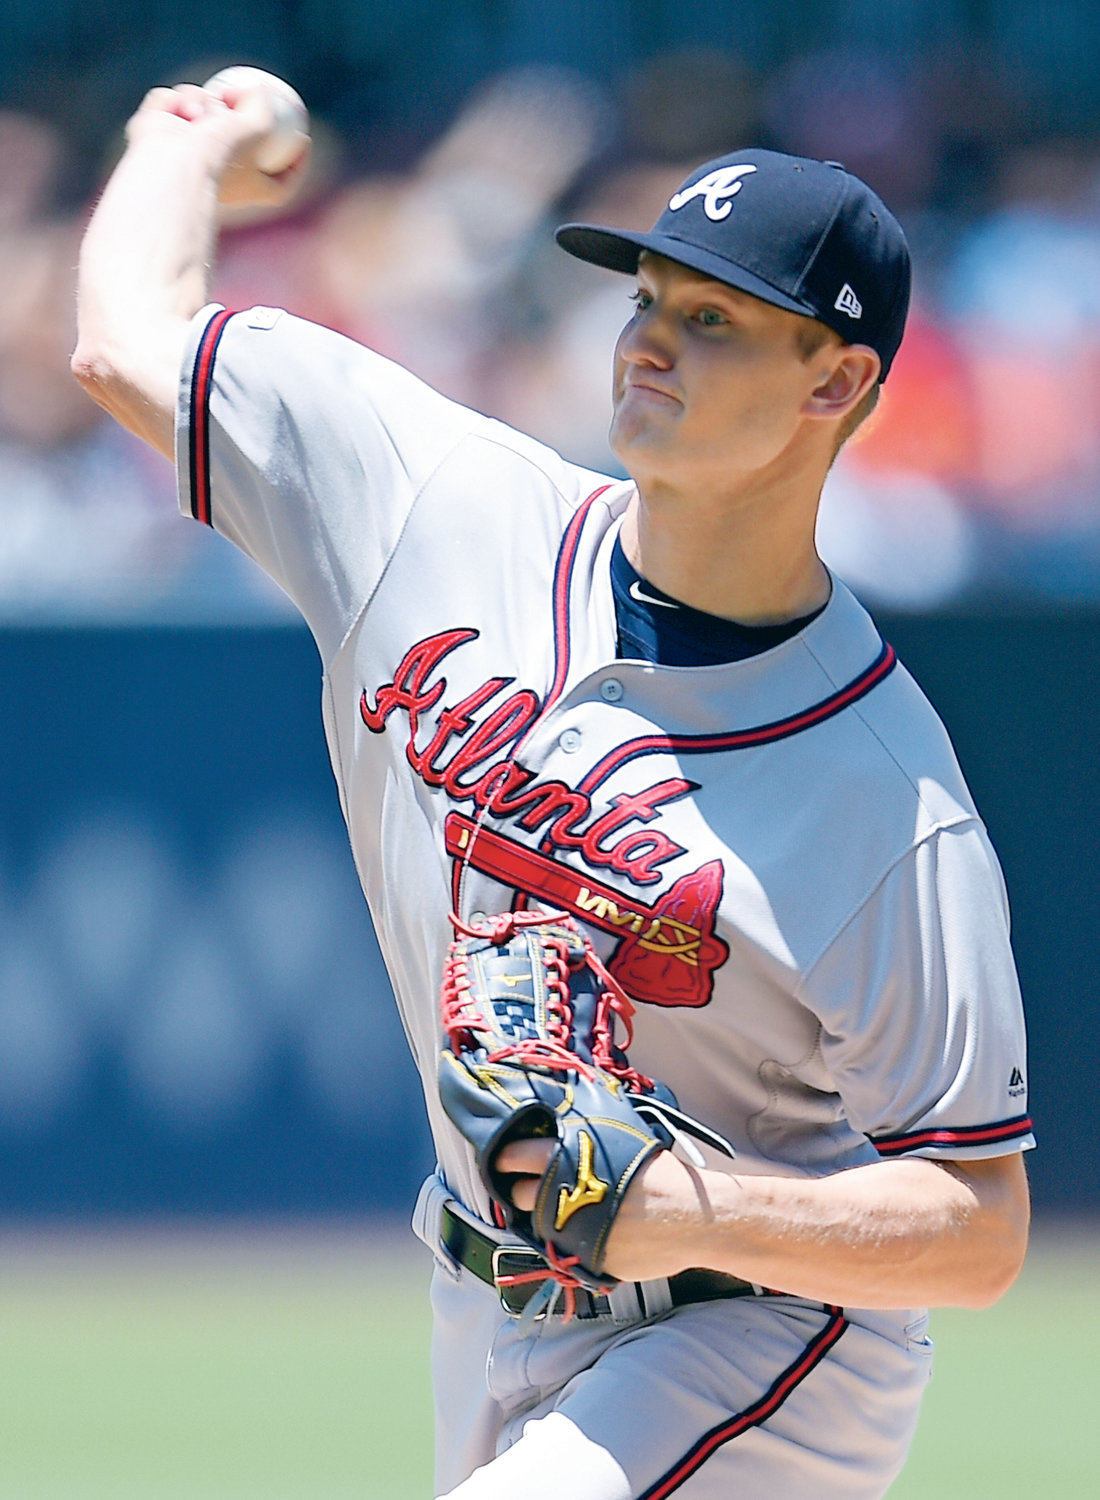 Atlanta Braves starting pitcher Mike Soroka delivers a pitch during the first inning of Sunday's game against the San Diego Padres in San Diego. He picked up his 10th win of the season as the Braves completed a sweep of the Padres.